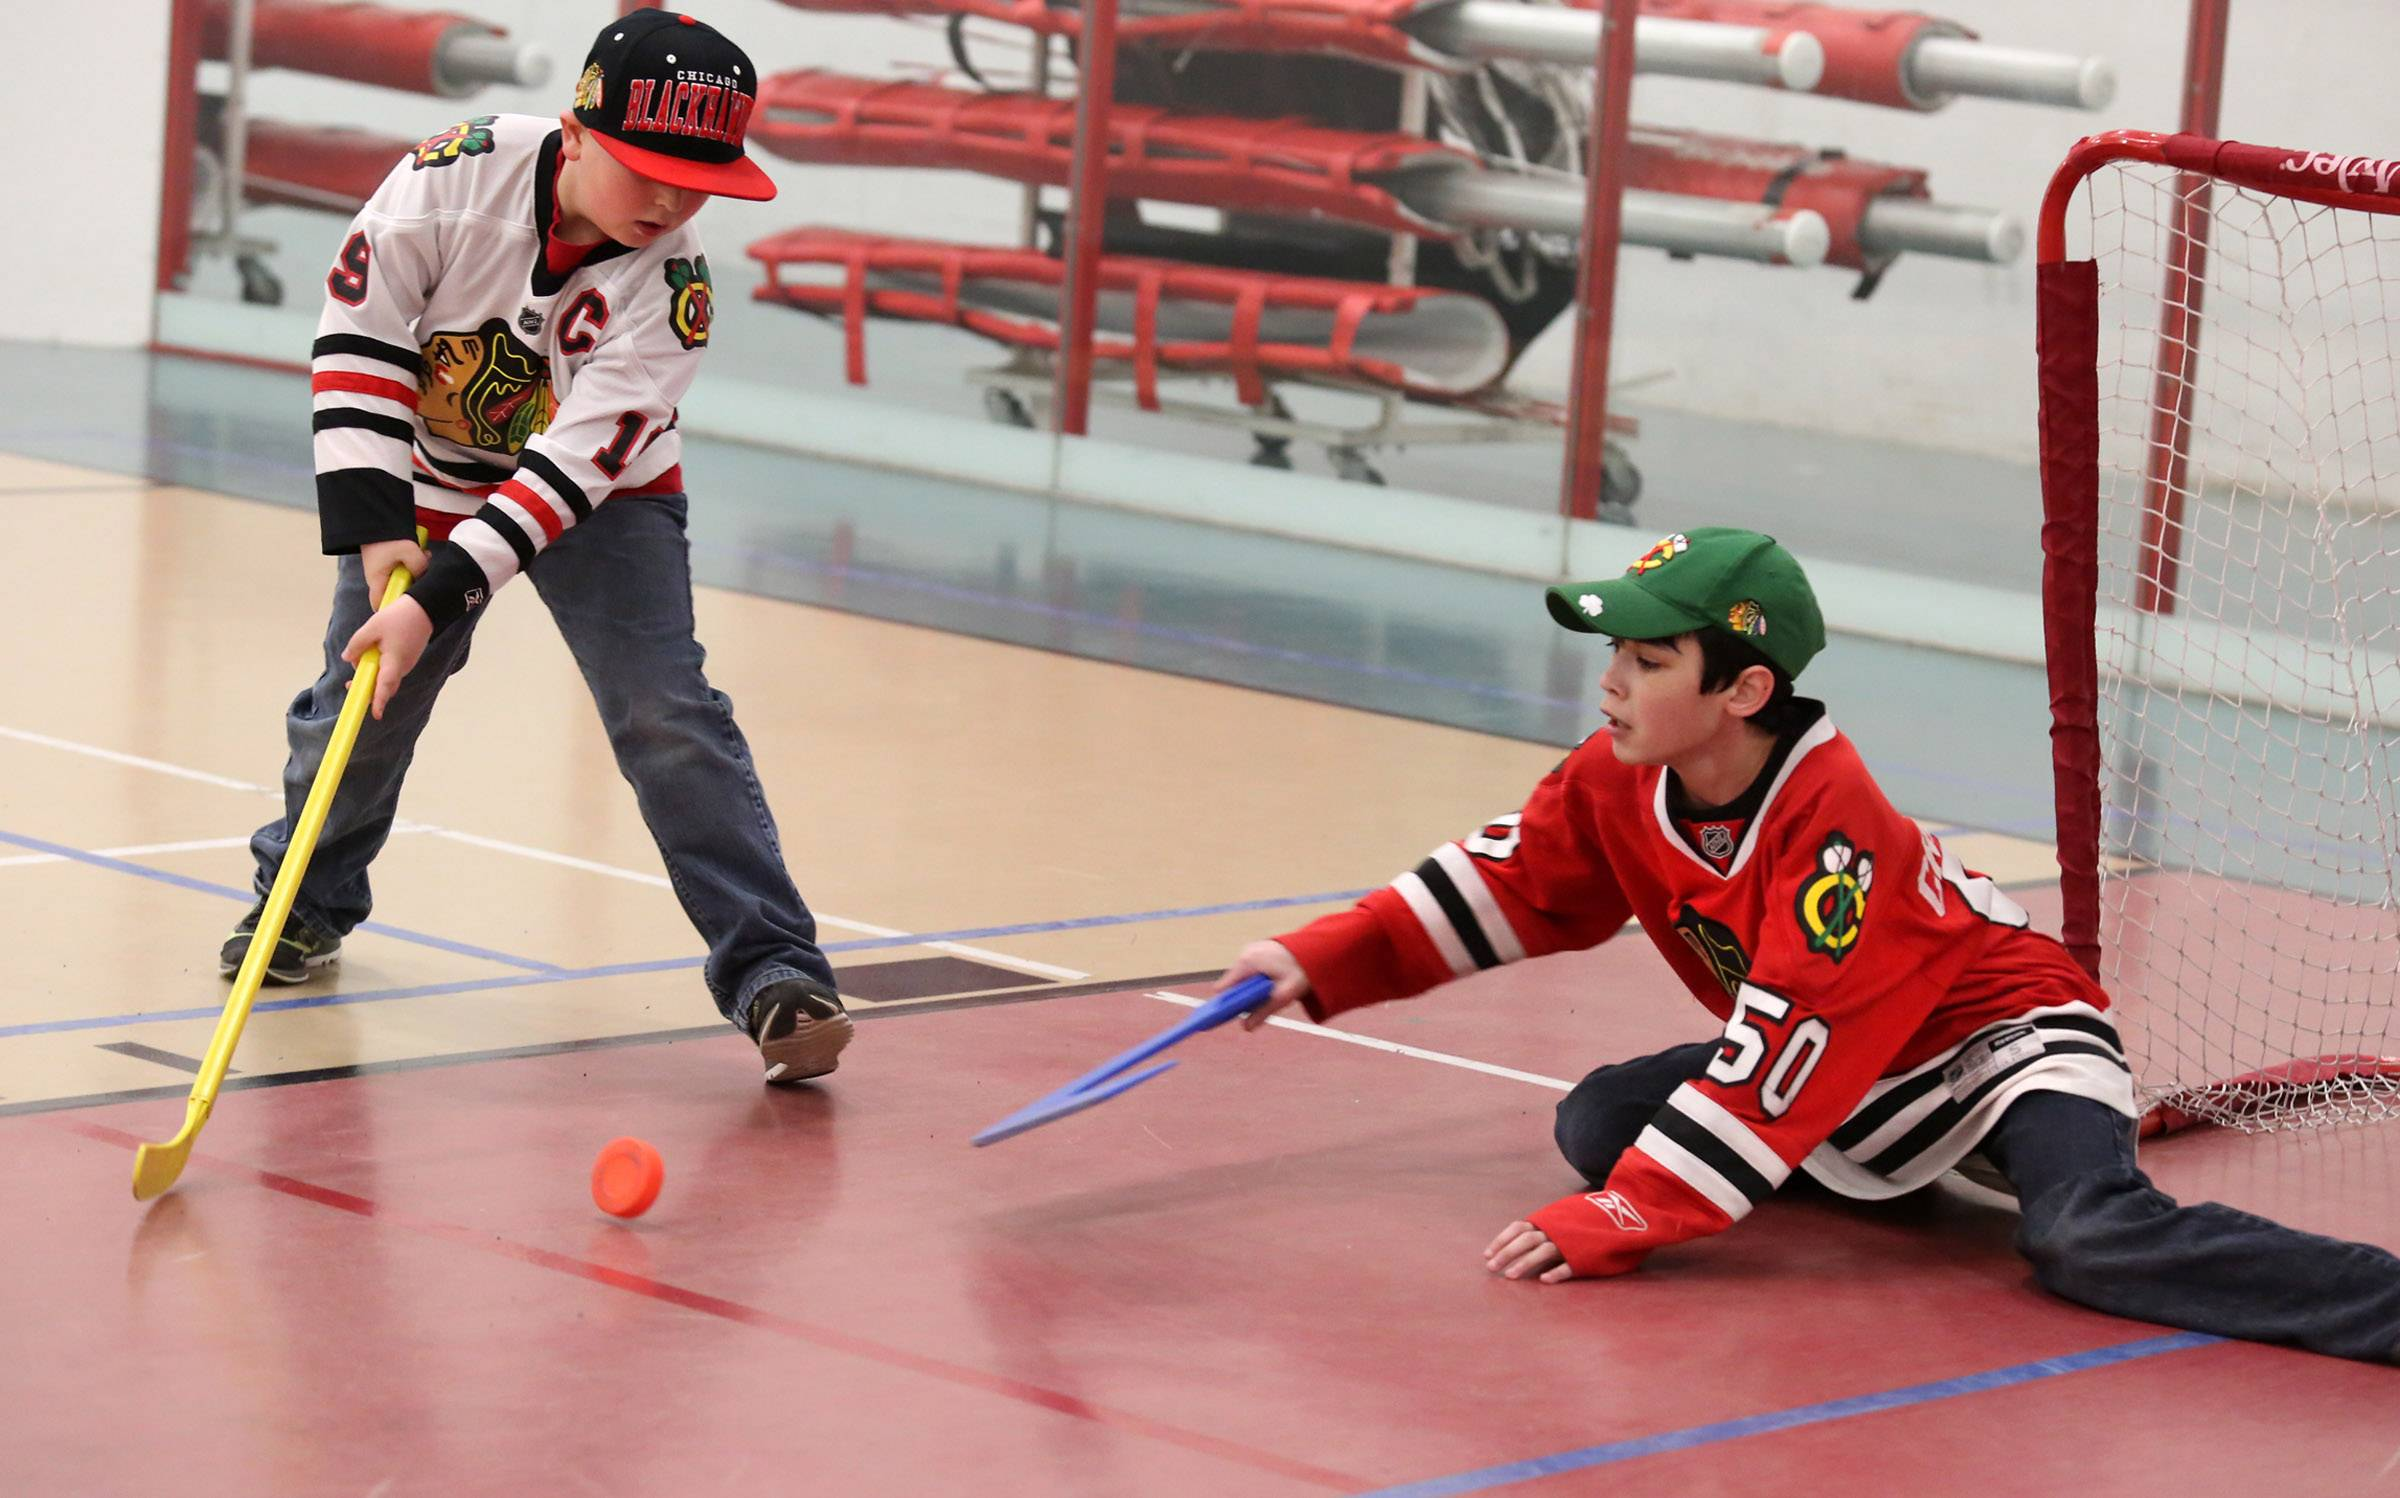 Spencer Trawin, 9, of Lindenhurst, left, takes a shot against goalie Ethan Neir, 13, of Libertyville on Friday in a practice area at the Chicago Blackhawks Roadwatch Party at the Libertyville Sports Complex.